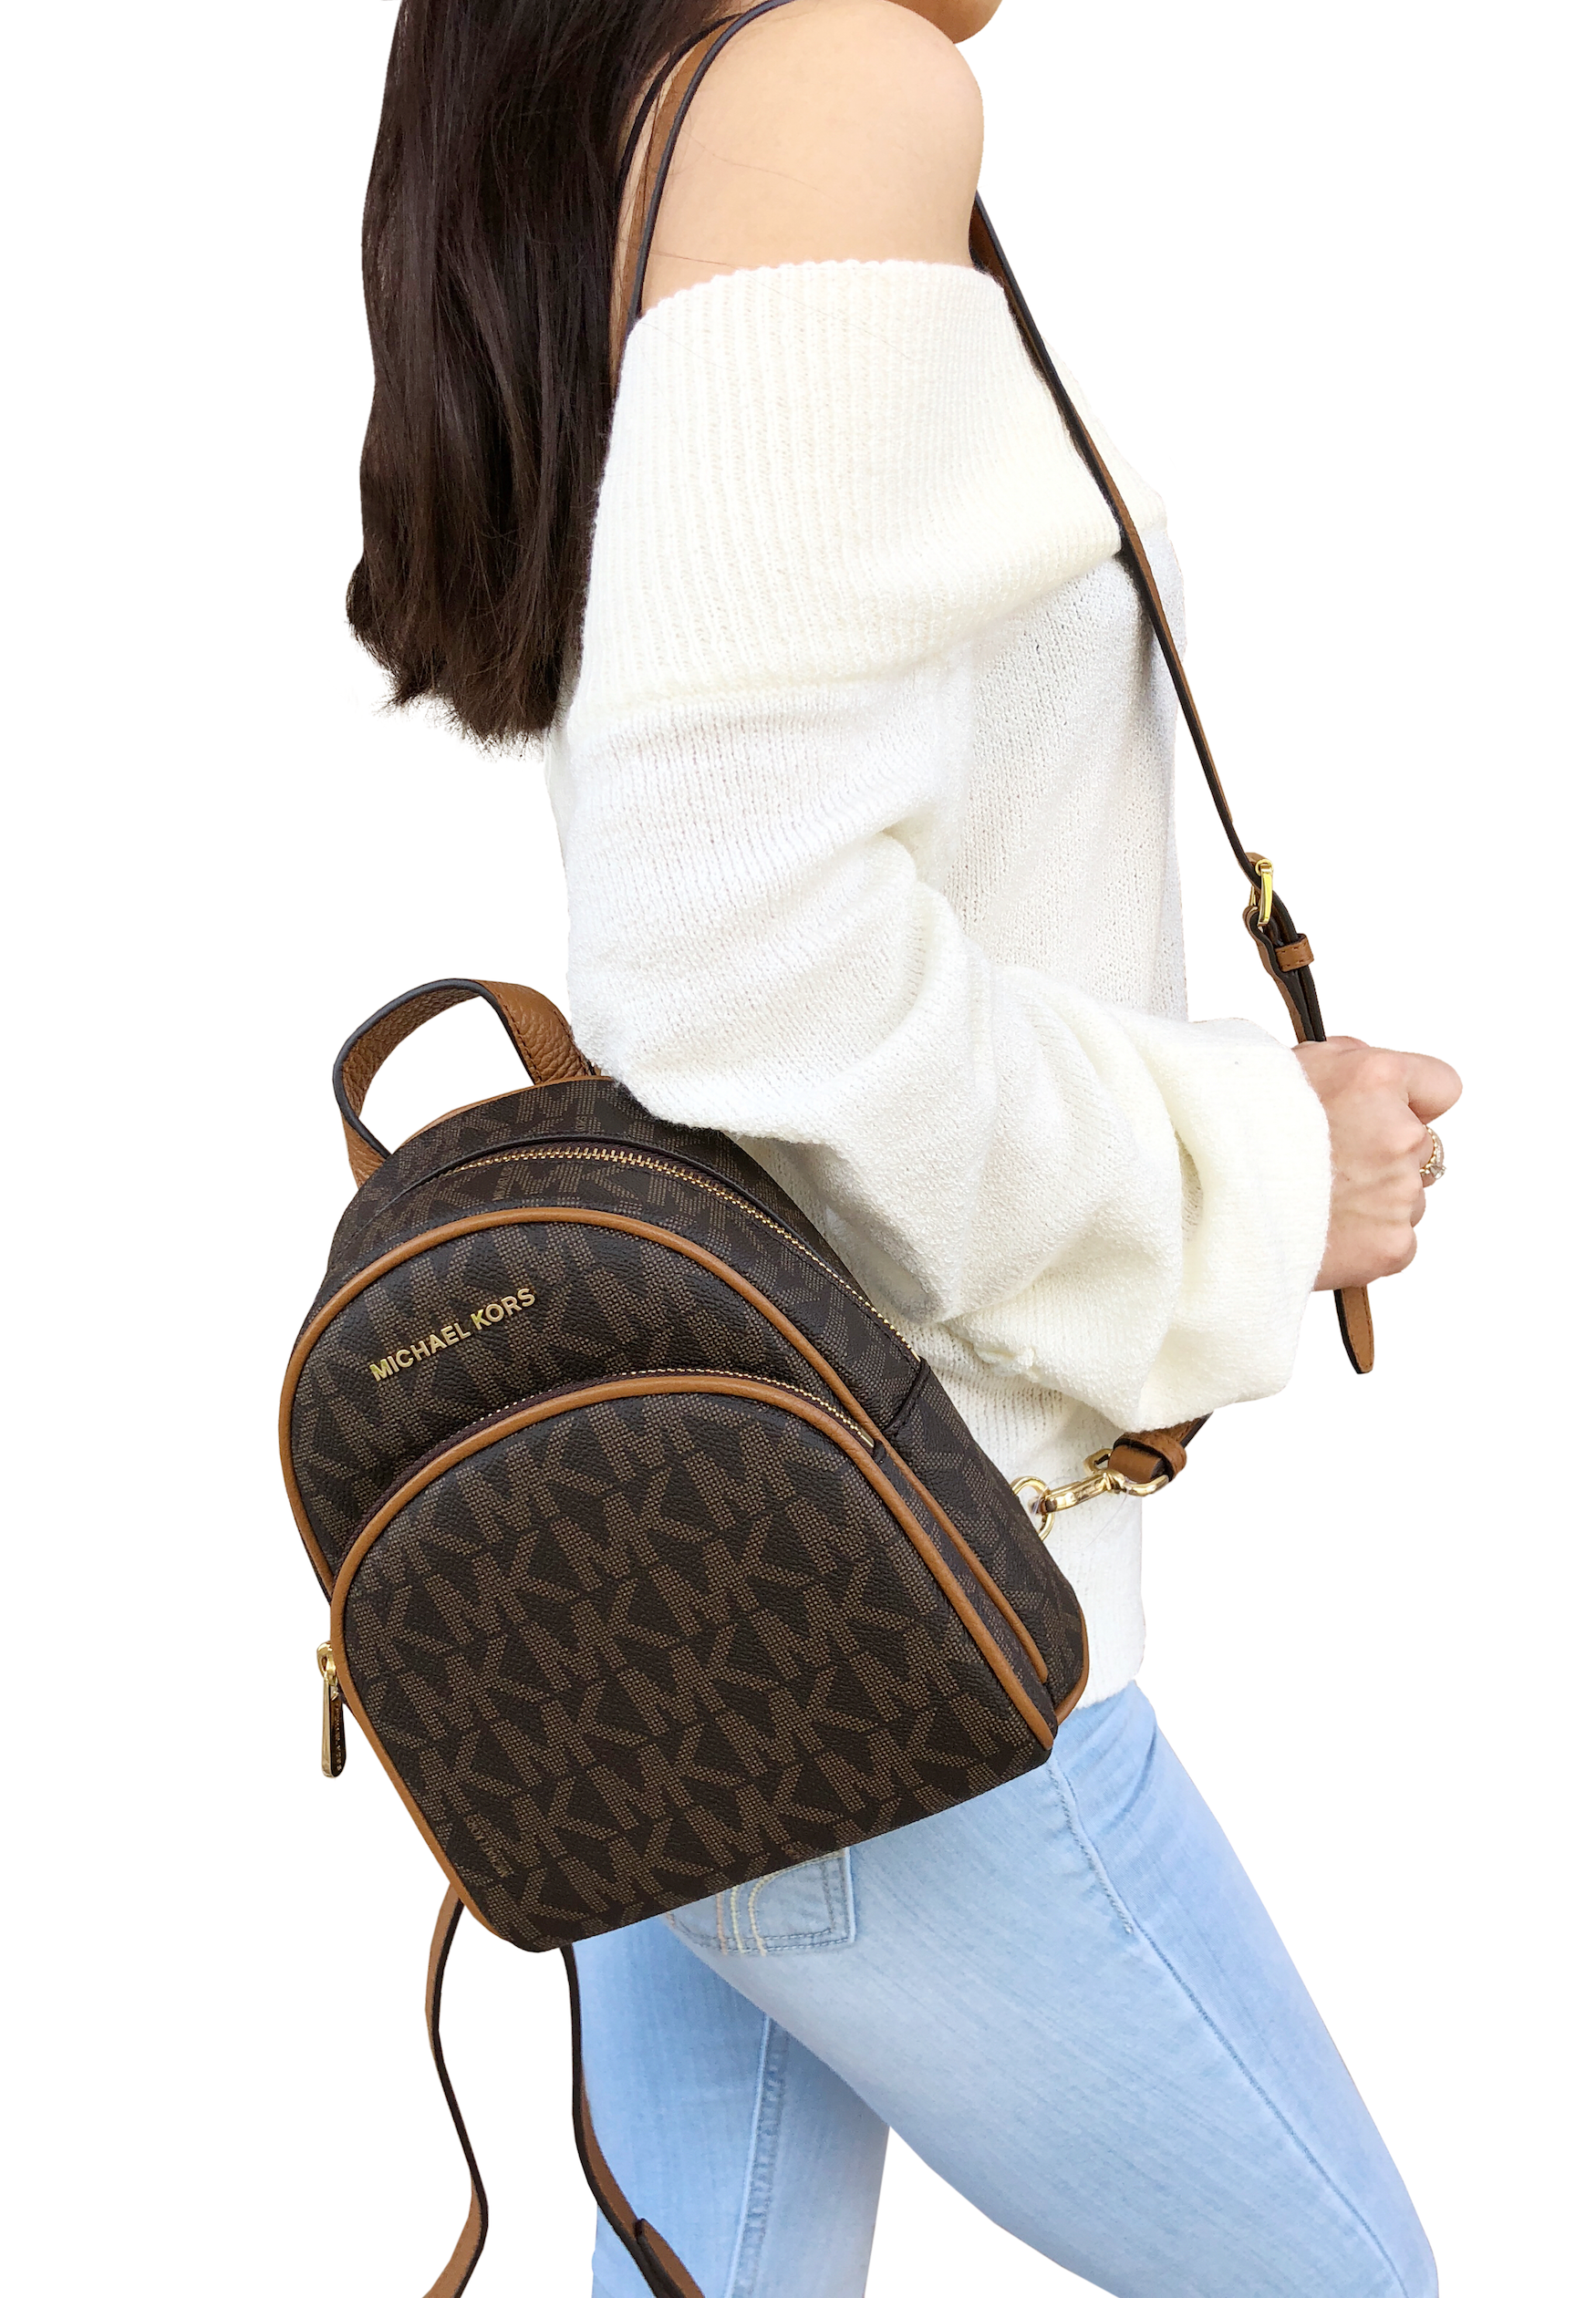 c85fbe8792d9 Michael Kors Abbey Mini Backpack Crossbody Brown MK Signature Acorn Extra  Small